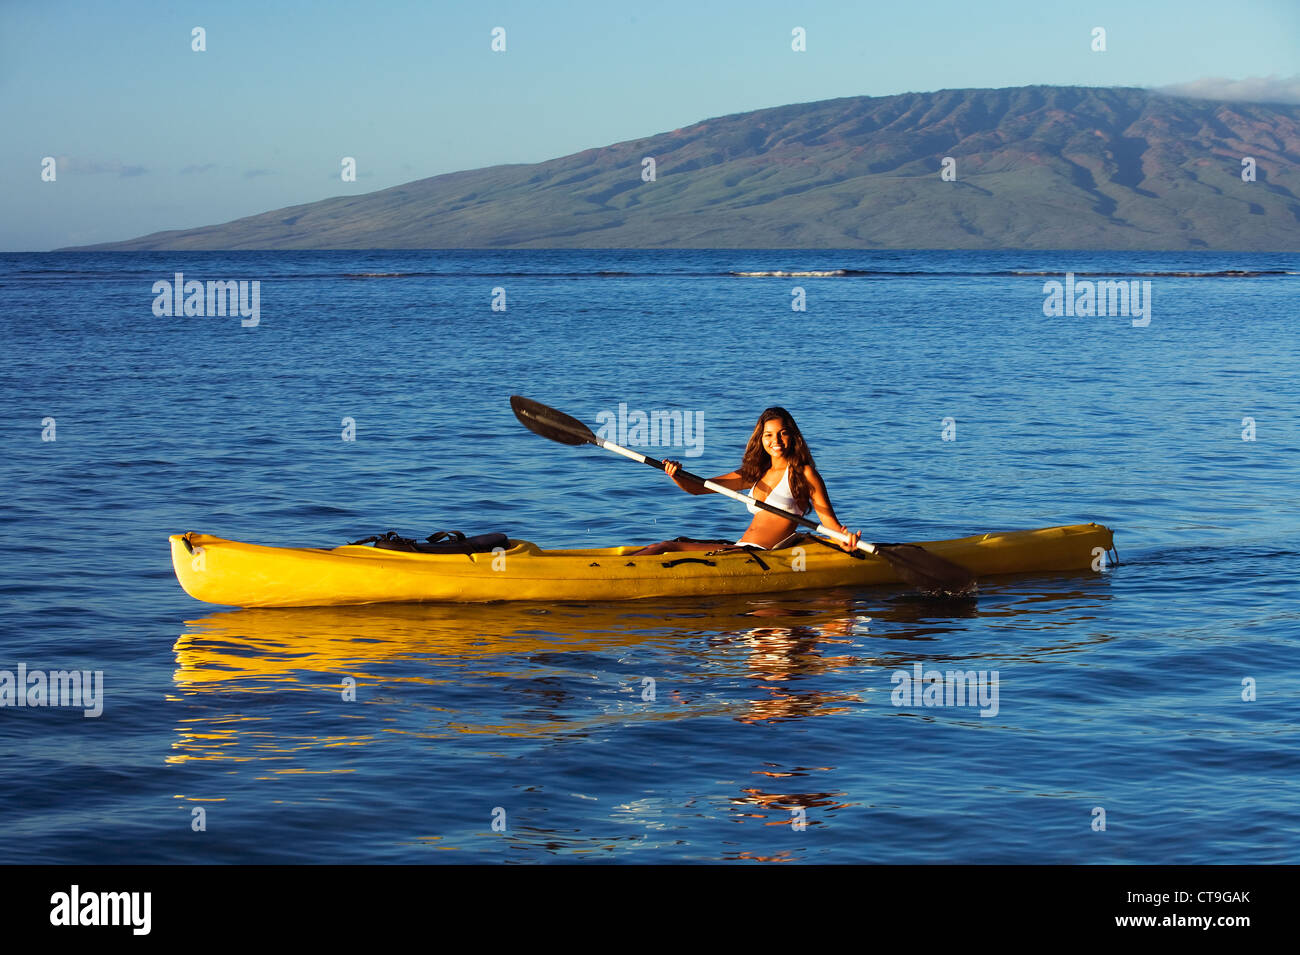 kayaking at lahaina, maui, hawaii stock photo: 49382891 - alamy